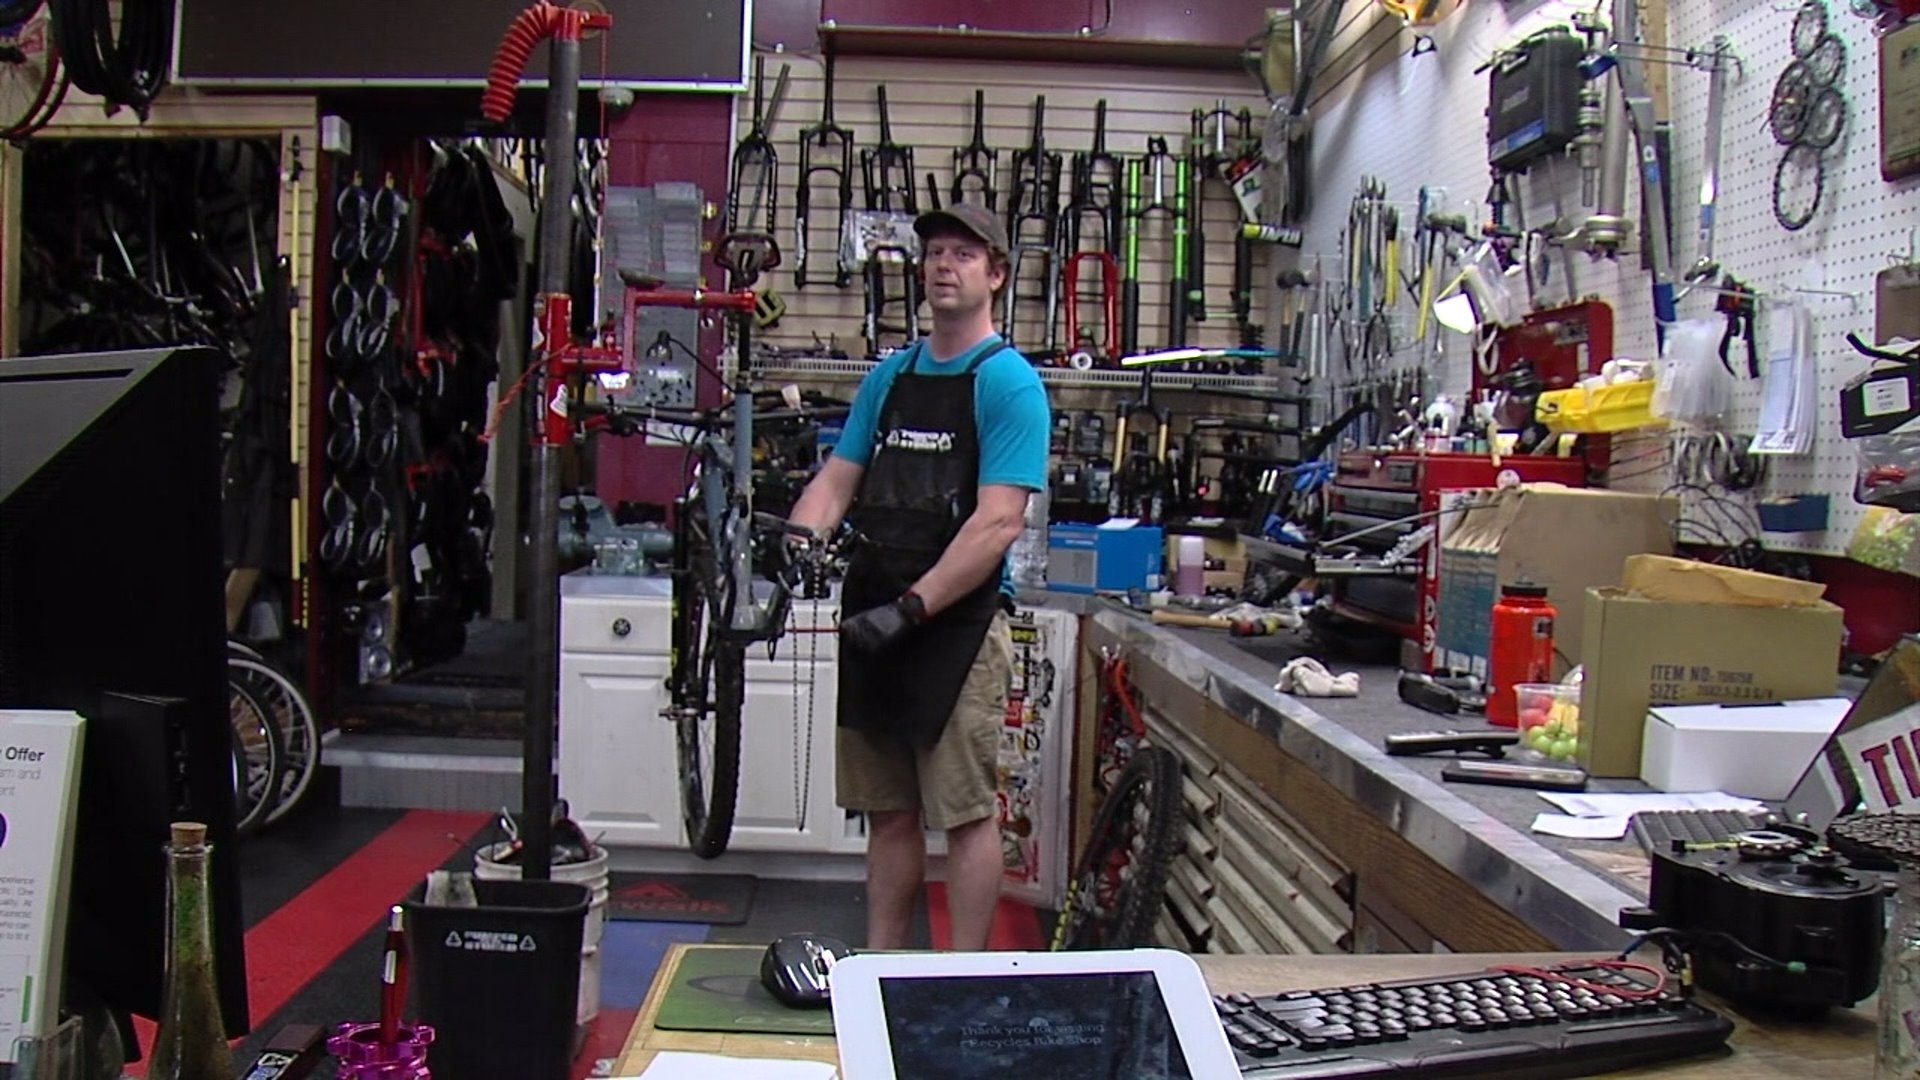 Greensboro bike shop owner sees boom in customers, repairs